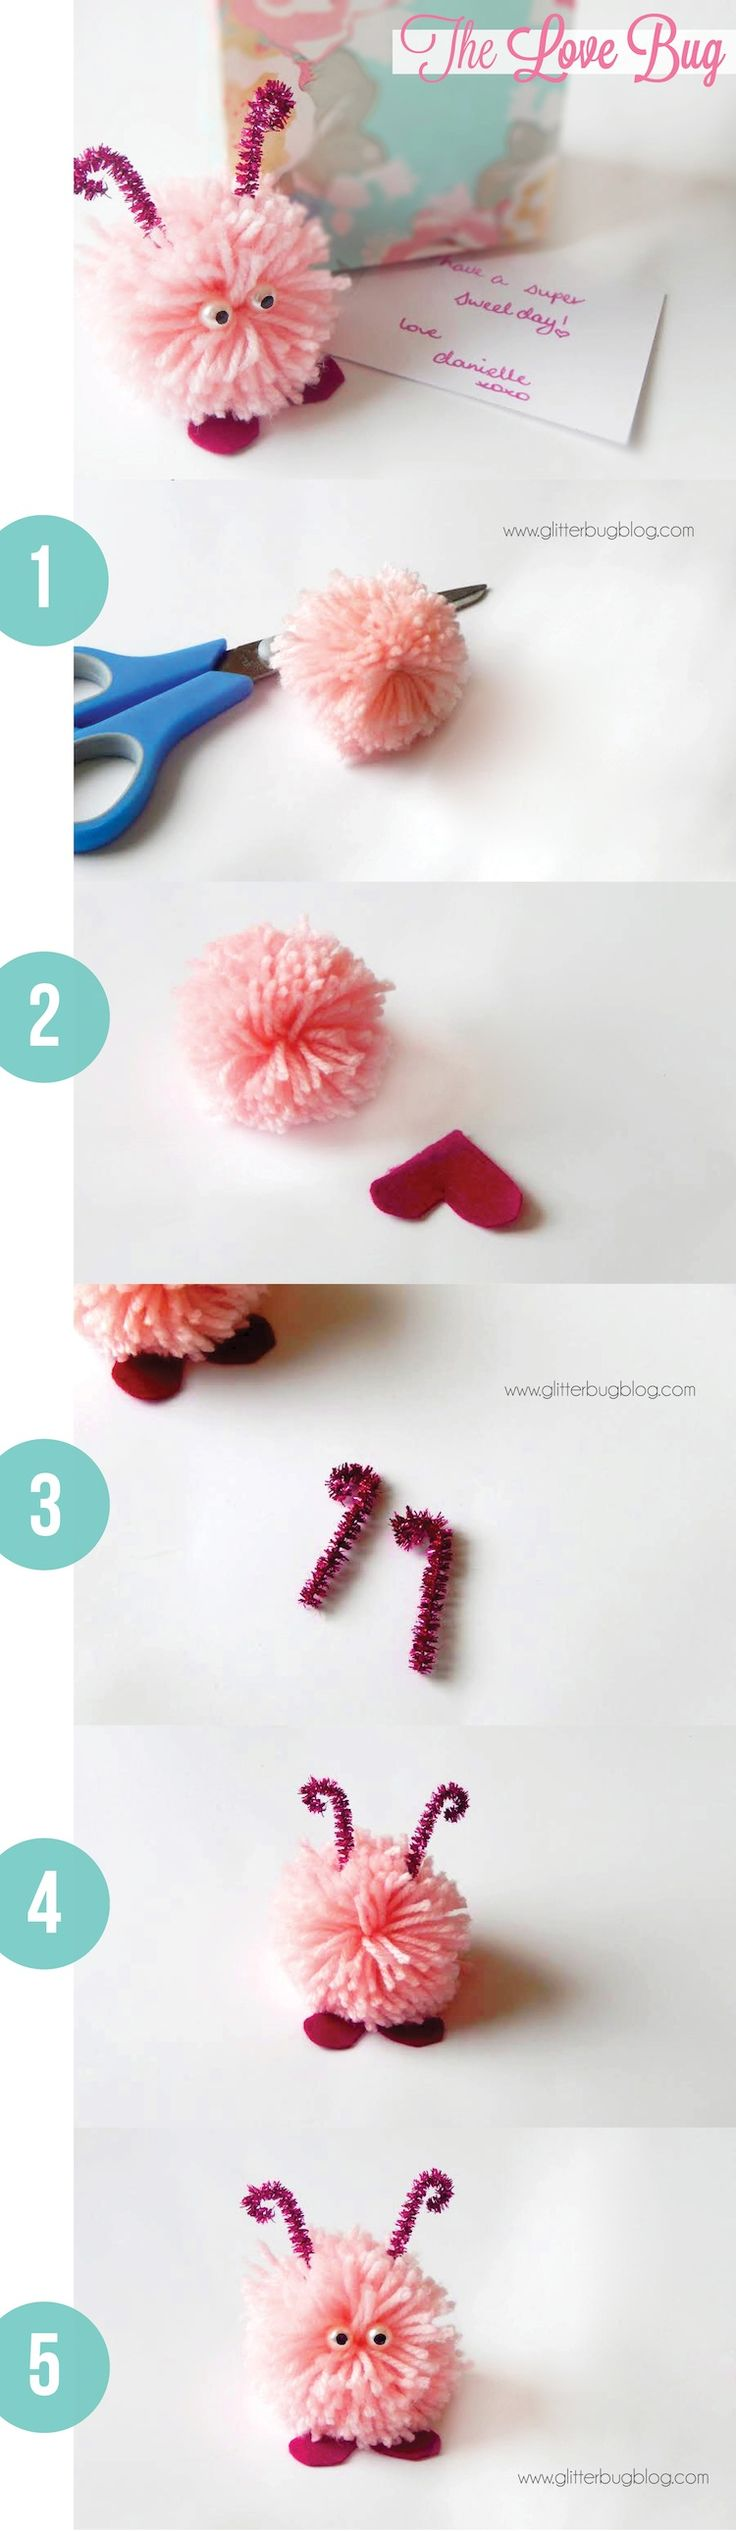 How to make a sweet love pom pom bug for Valentine's Day.